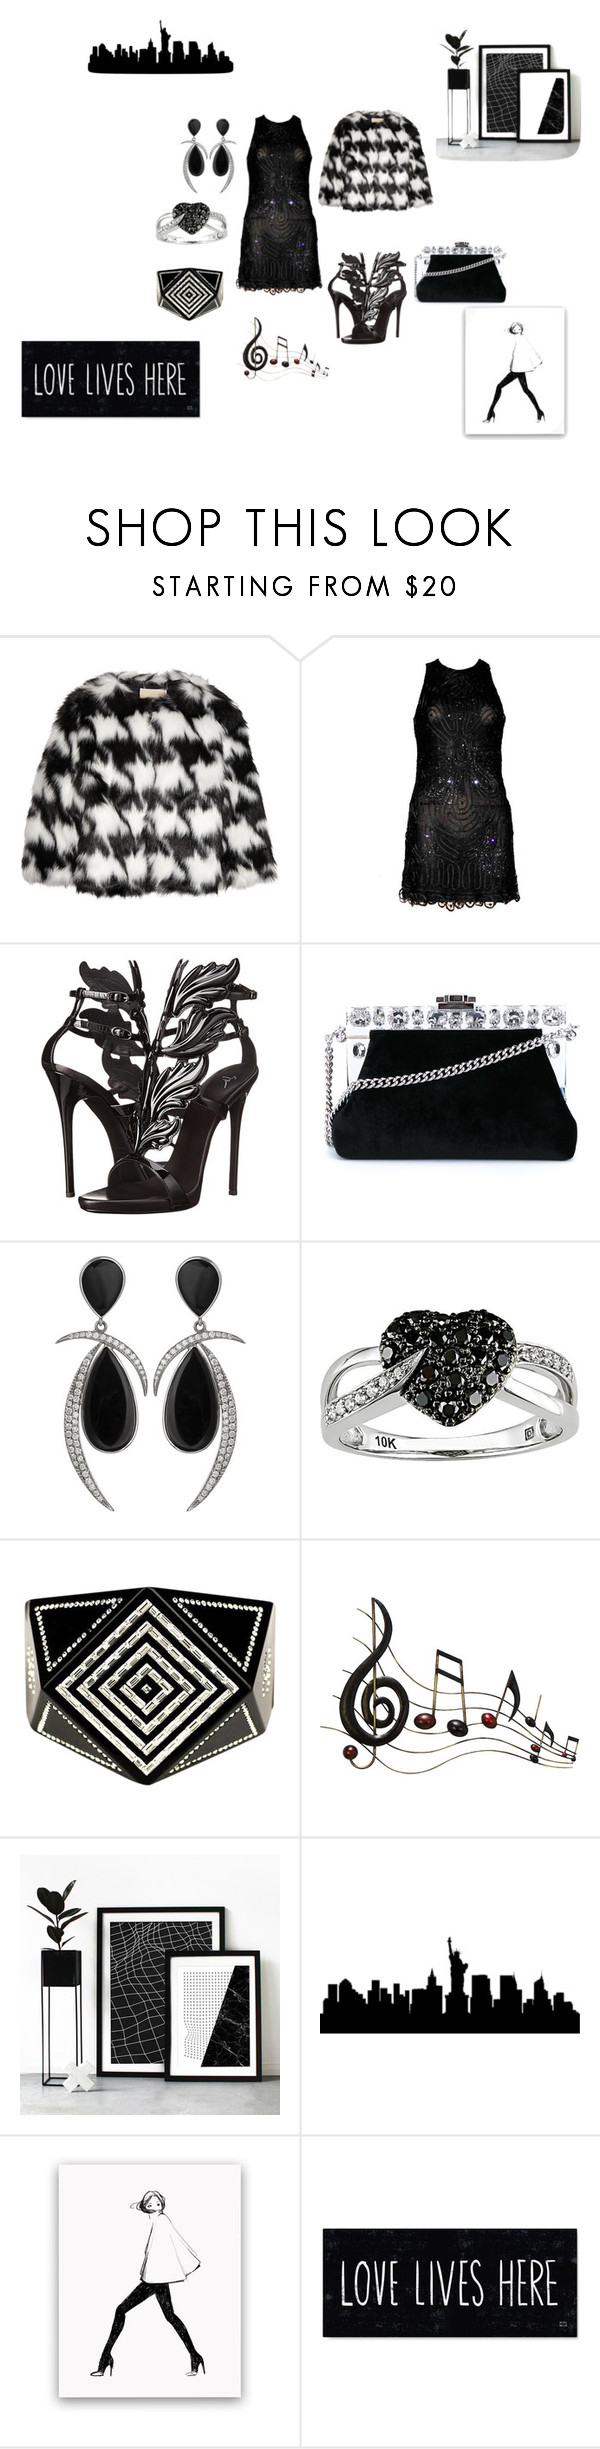 """Untitled #349"" by deirdre35 on Polyvore featuring MICHAEL Michael Kors, Versace, Giuseppe Zanotti, Dolce&Gabbana, Jorge Adeler, Ice, Chanel and Benzara"